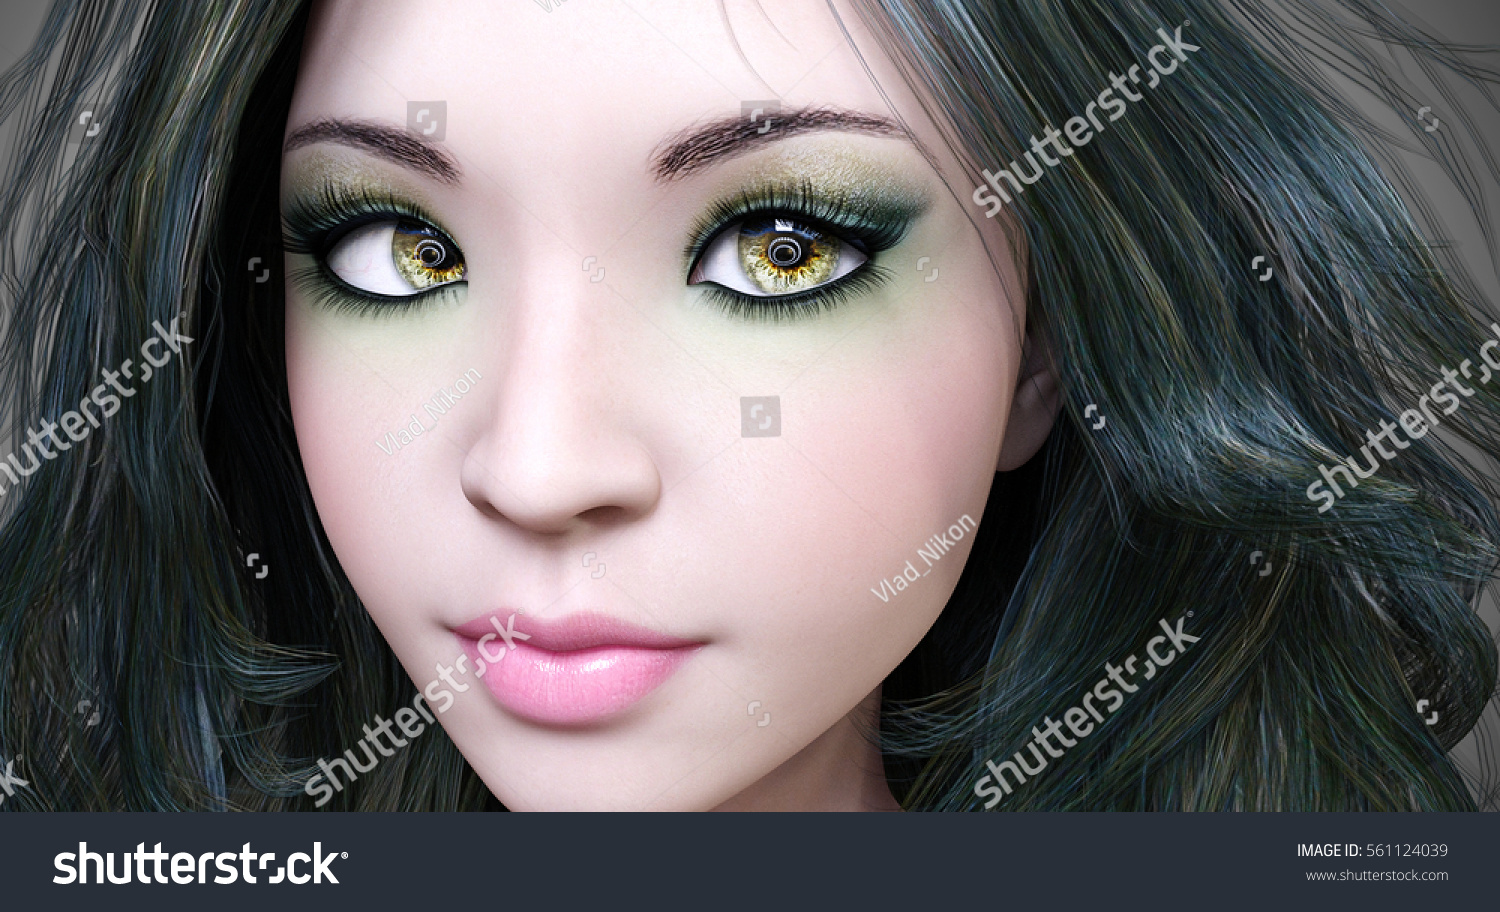 Portrait beautiful young girl with green eyes and red lips. Soft skin. Dark hair